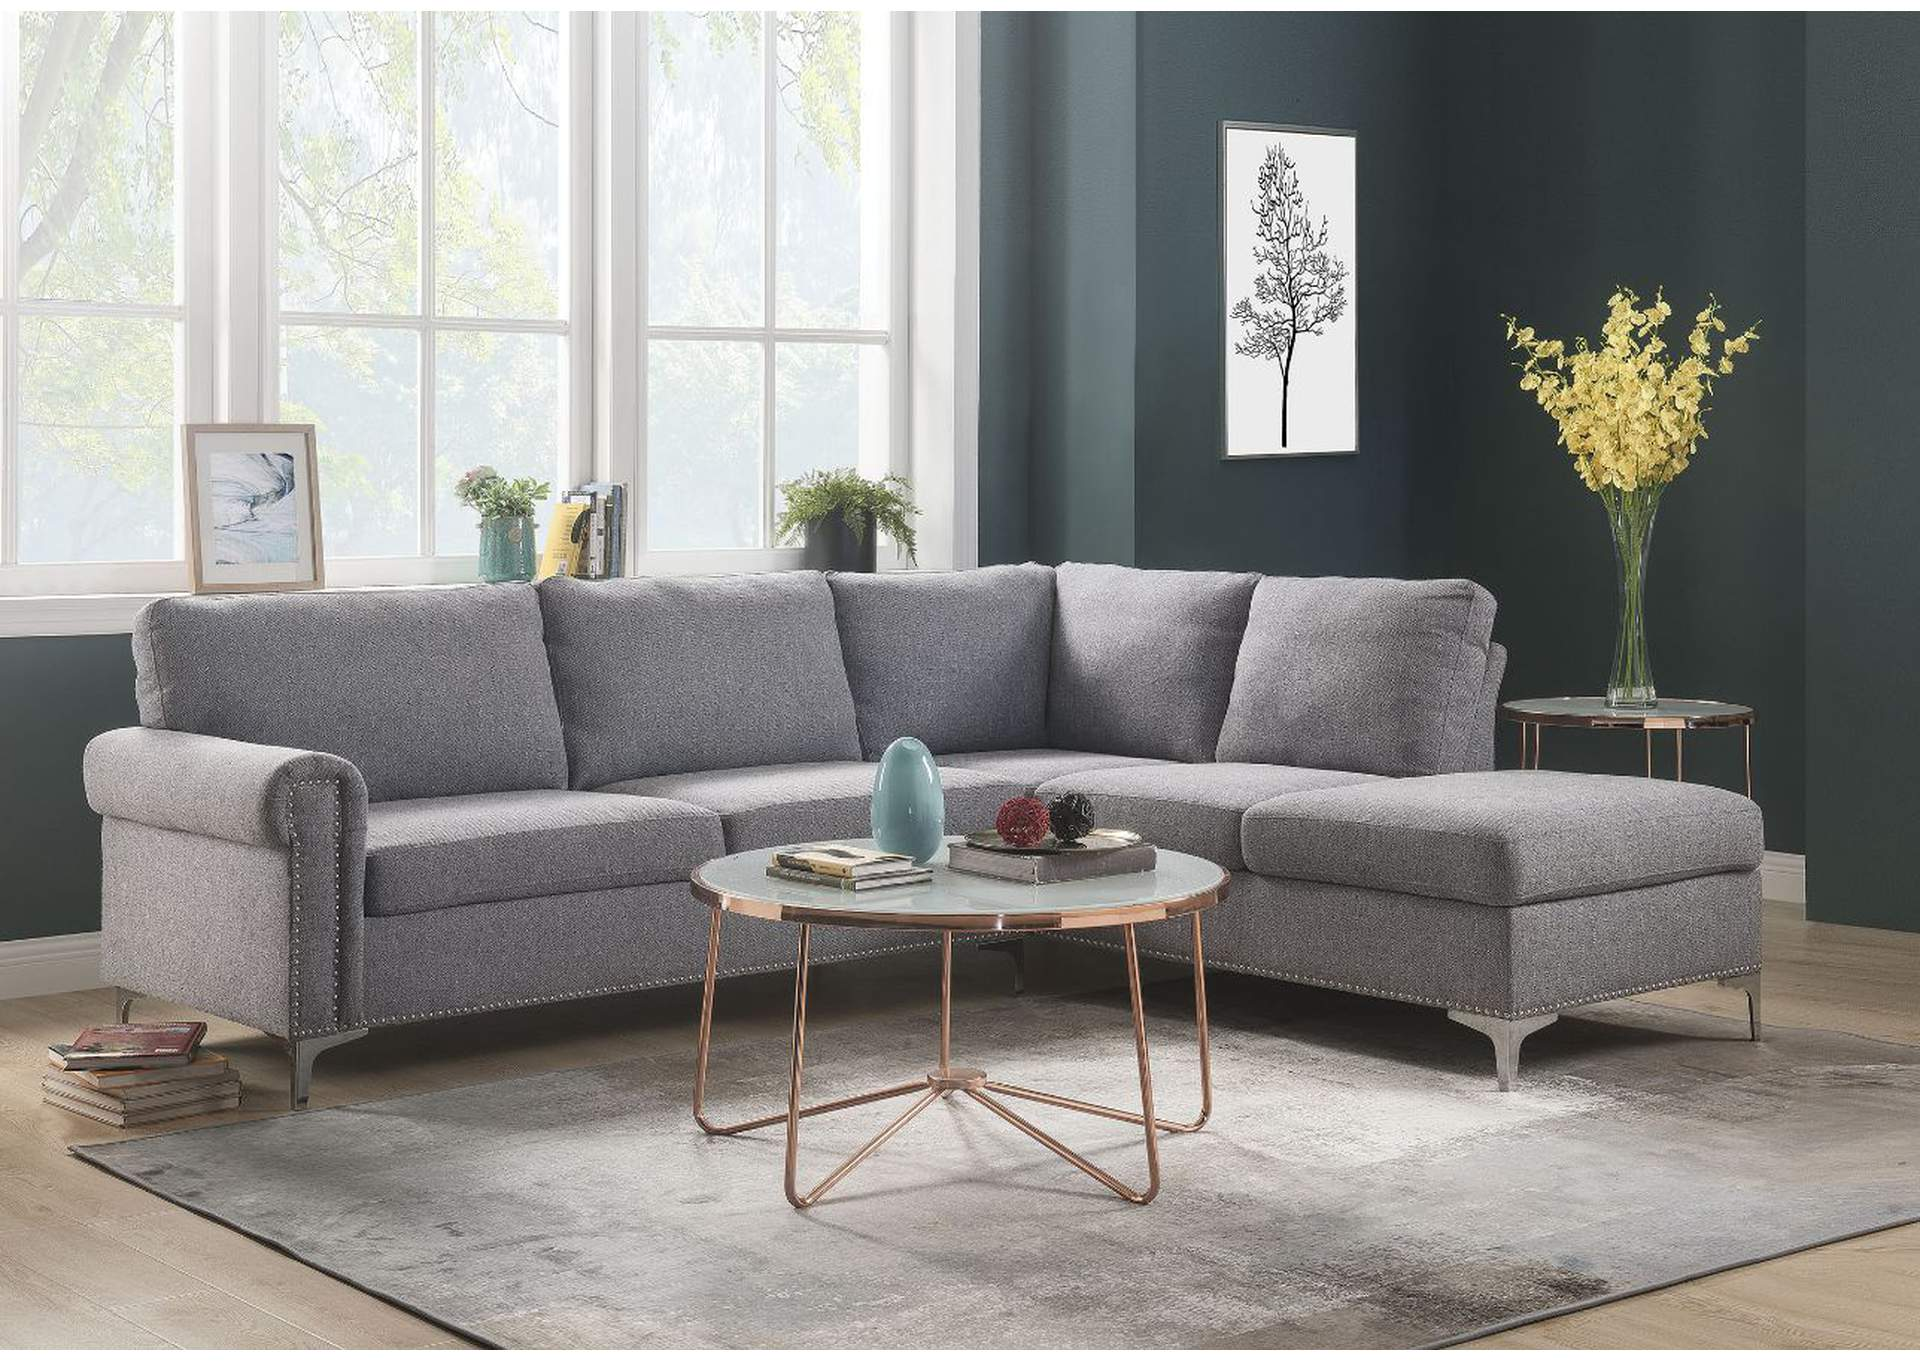 Melvyn Gray Fabric Sectional Sofa,Acme